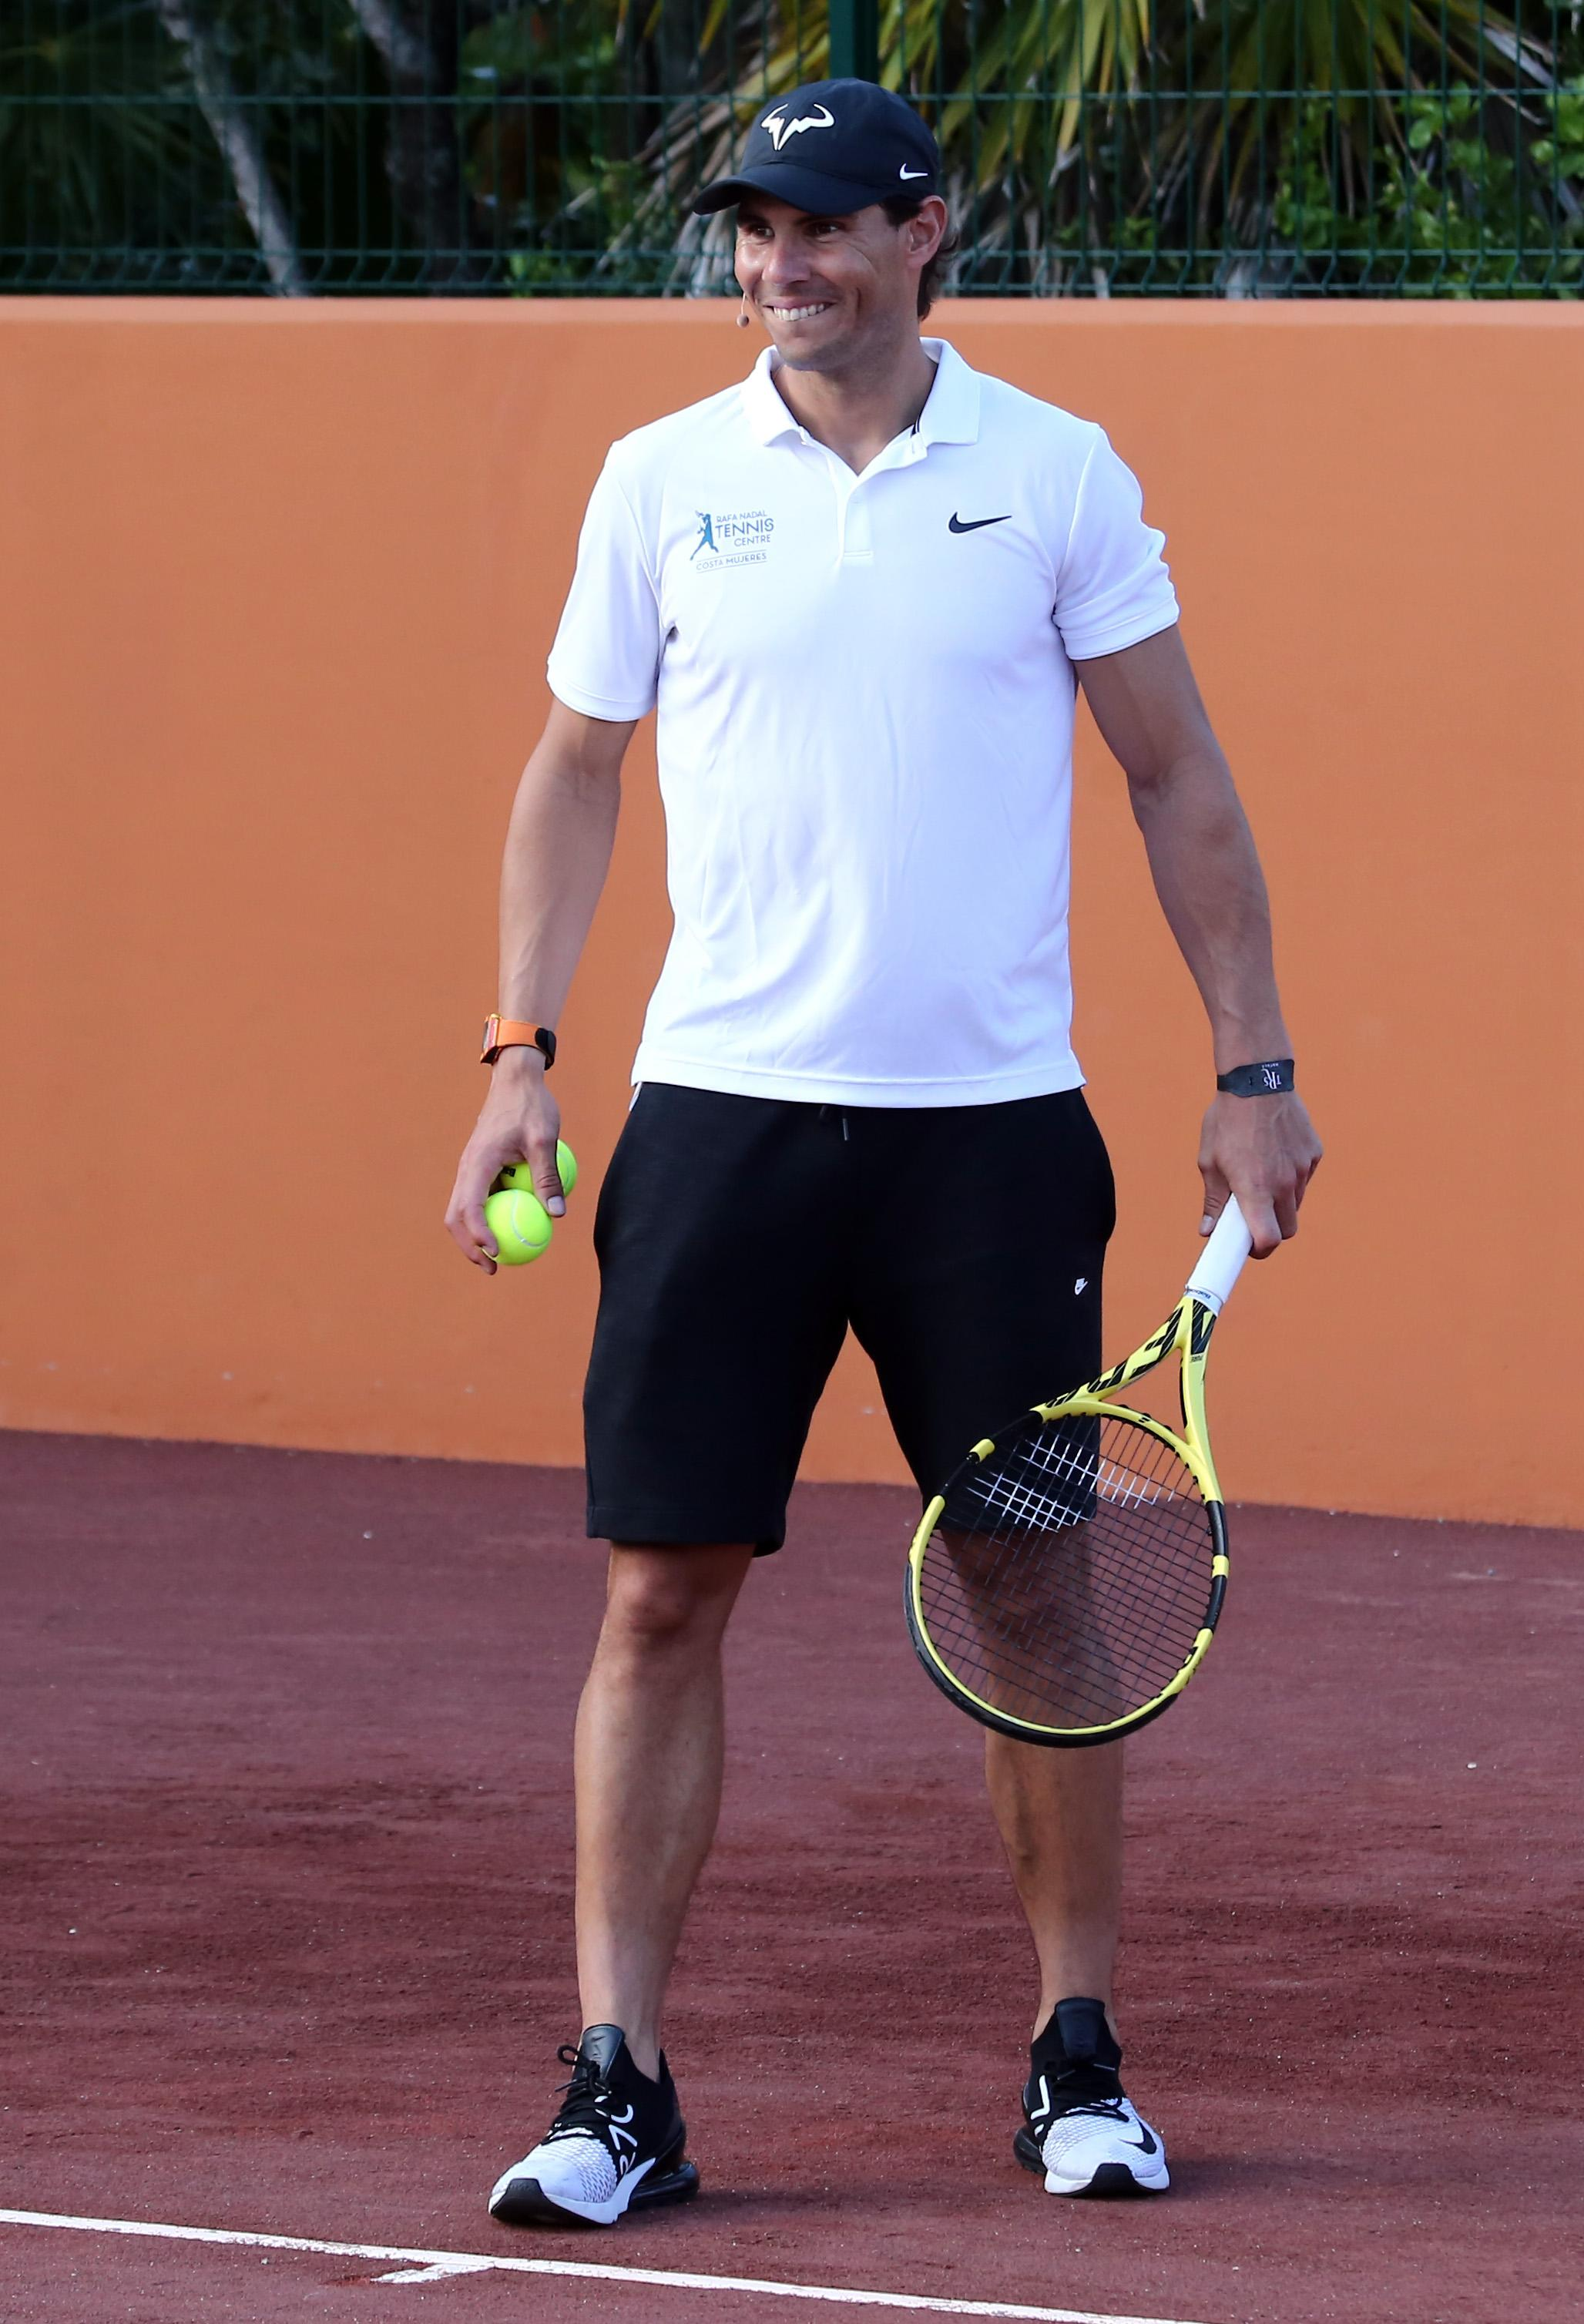 Clay King Nadal Opens Tennis Academy In Mexico